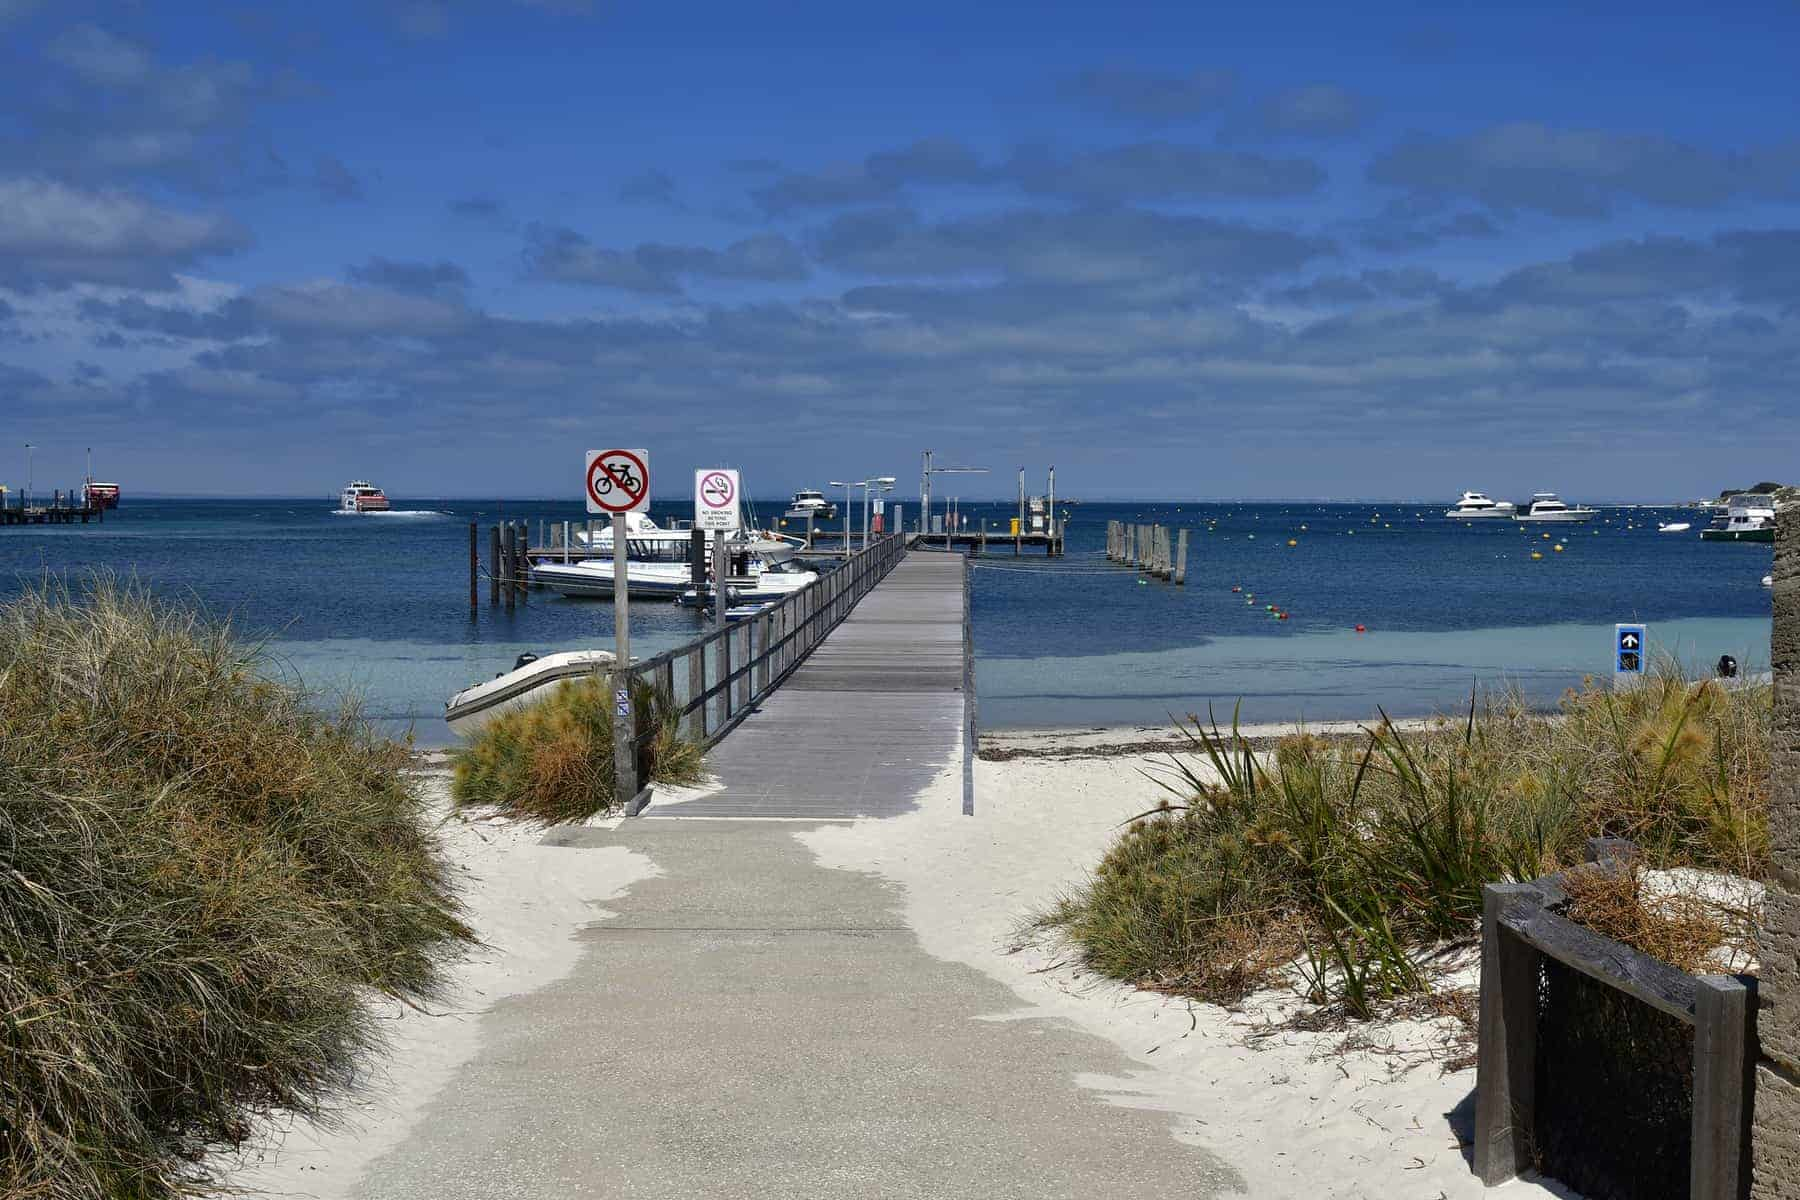 Ferry to Perth and yachts on jetty in Rottnest Island